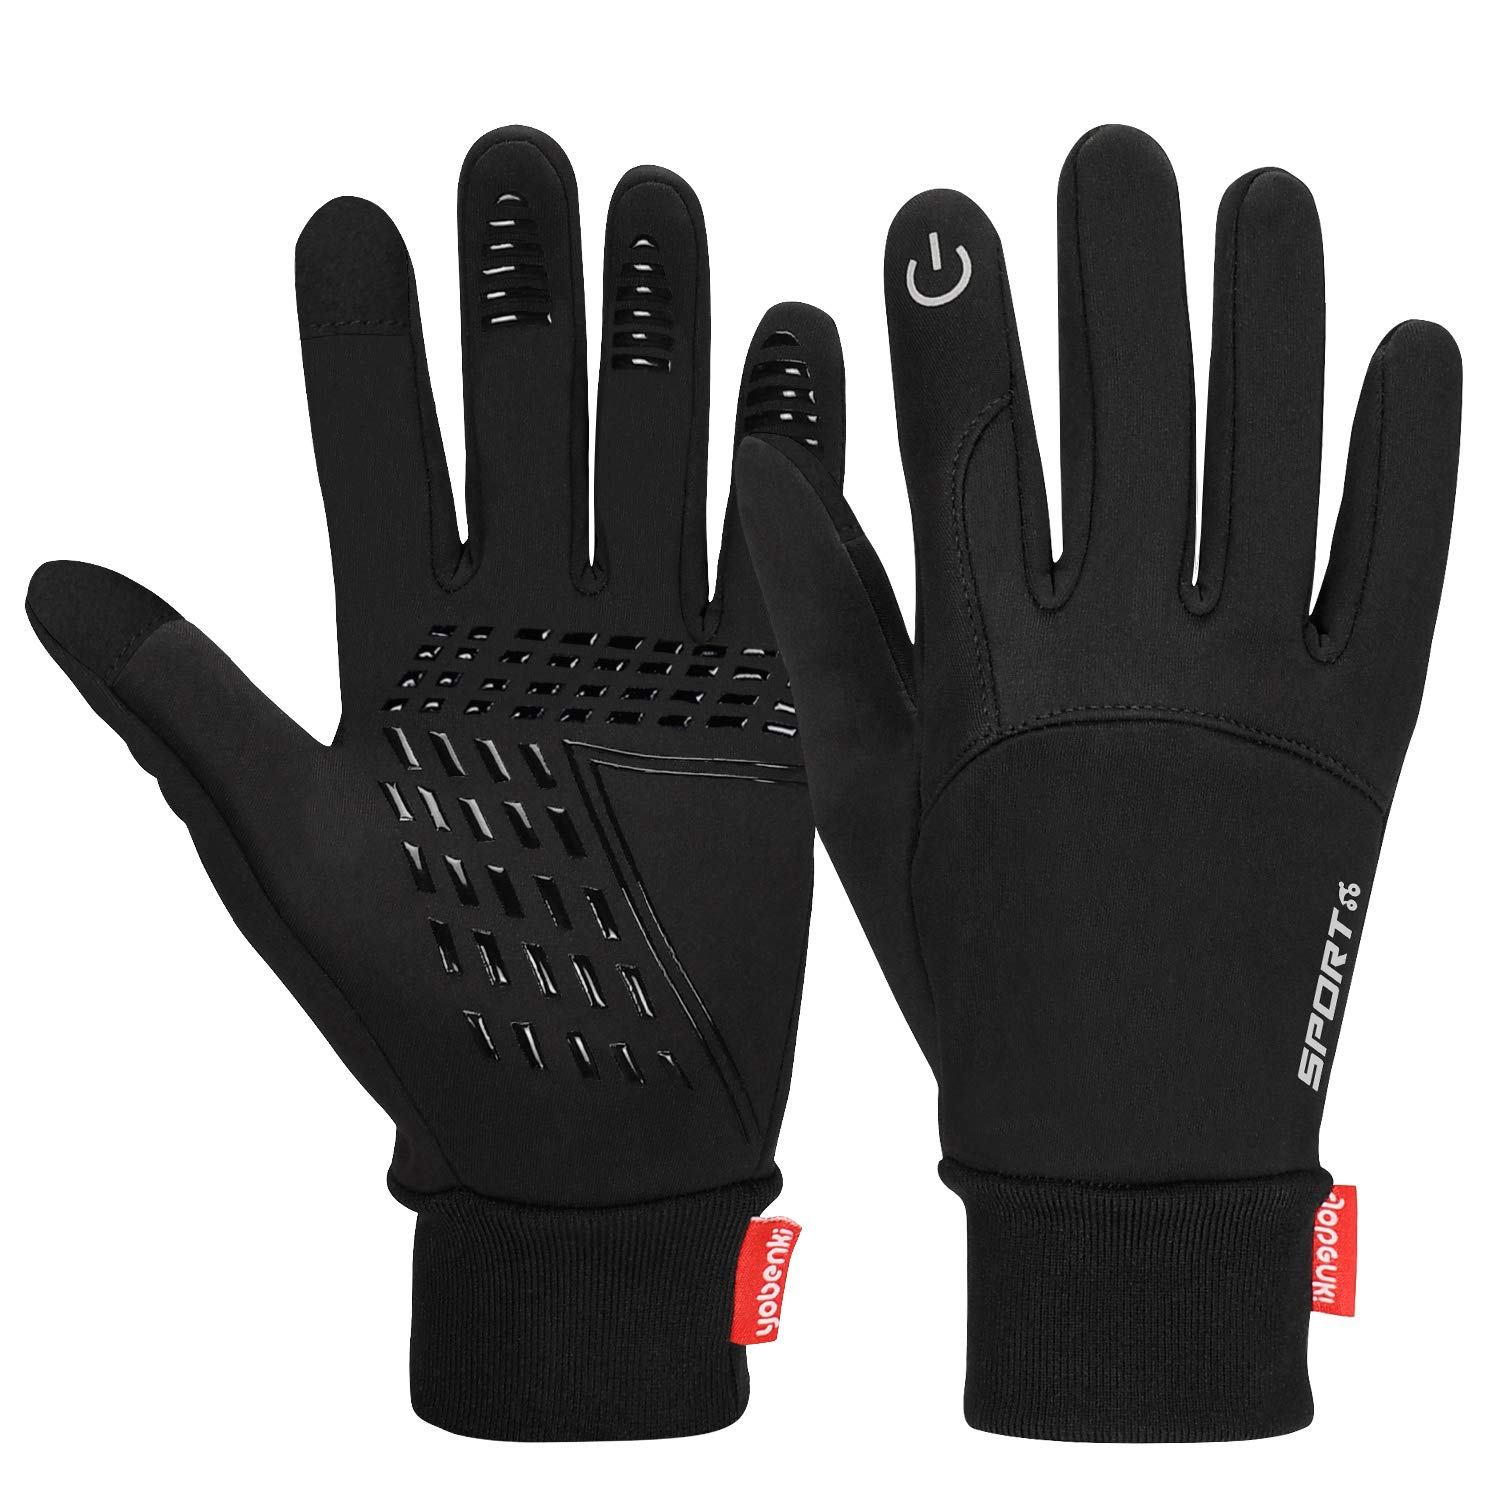 Cevapro Winter Warm Gloves, Touchscreen Gloves Cold Weather Cycling Gloves Windproof Waterproof Winter Sports Gloves for Running, Biking, Driving, Climbing, Hiking - Men & Women(Black, L) by Cevapro